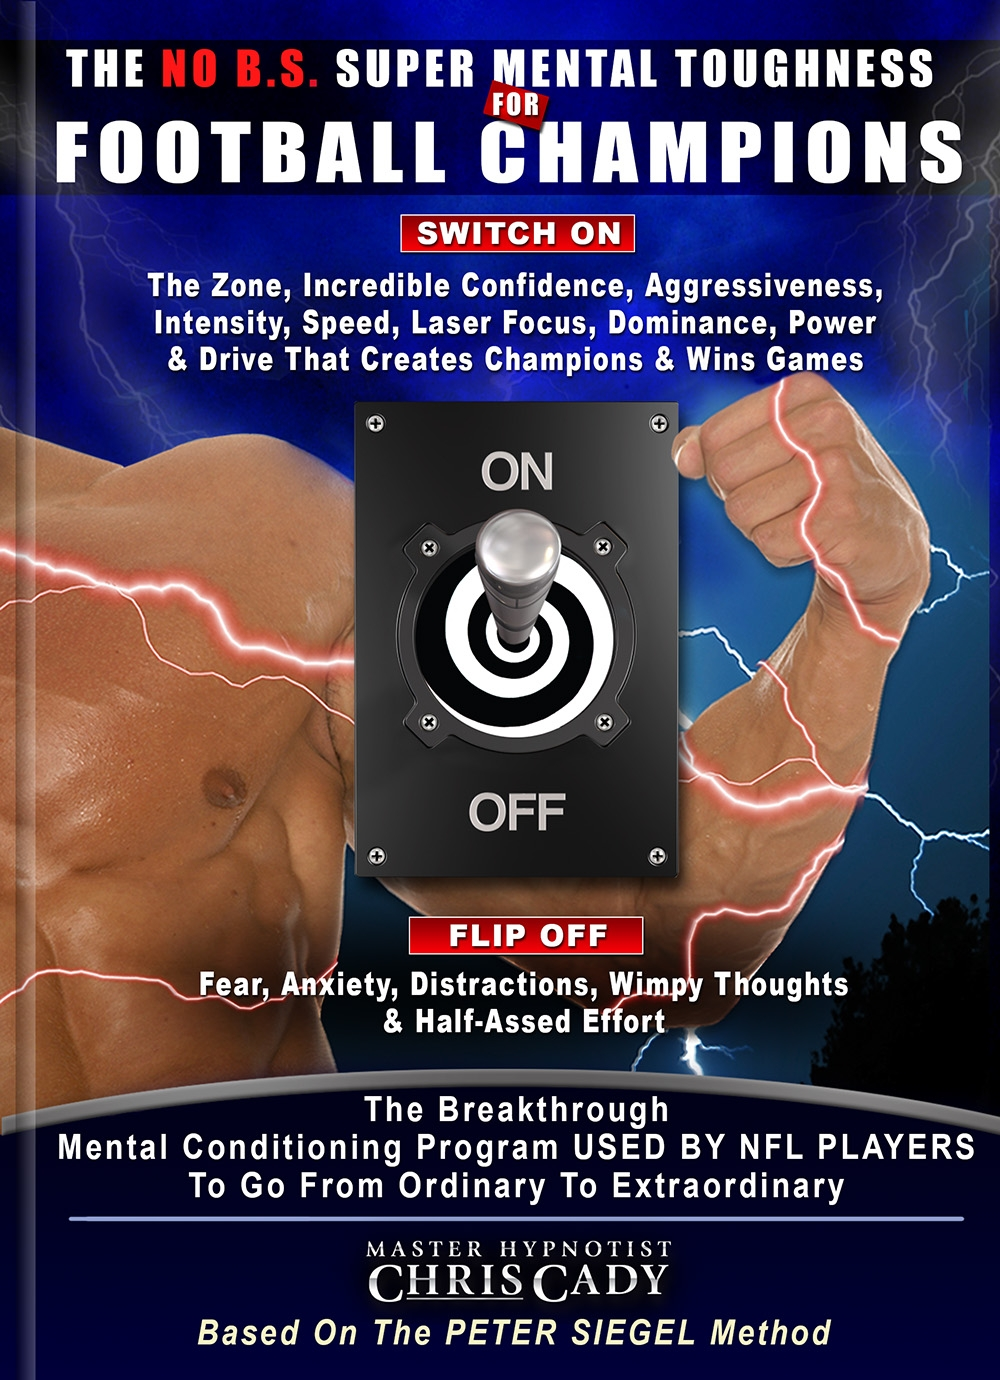 football mental toughness cover mental game training confidence